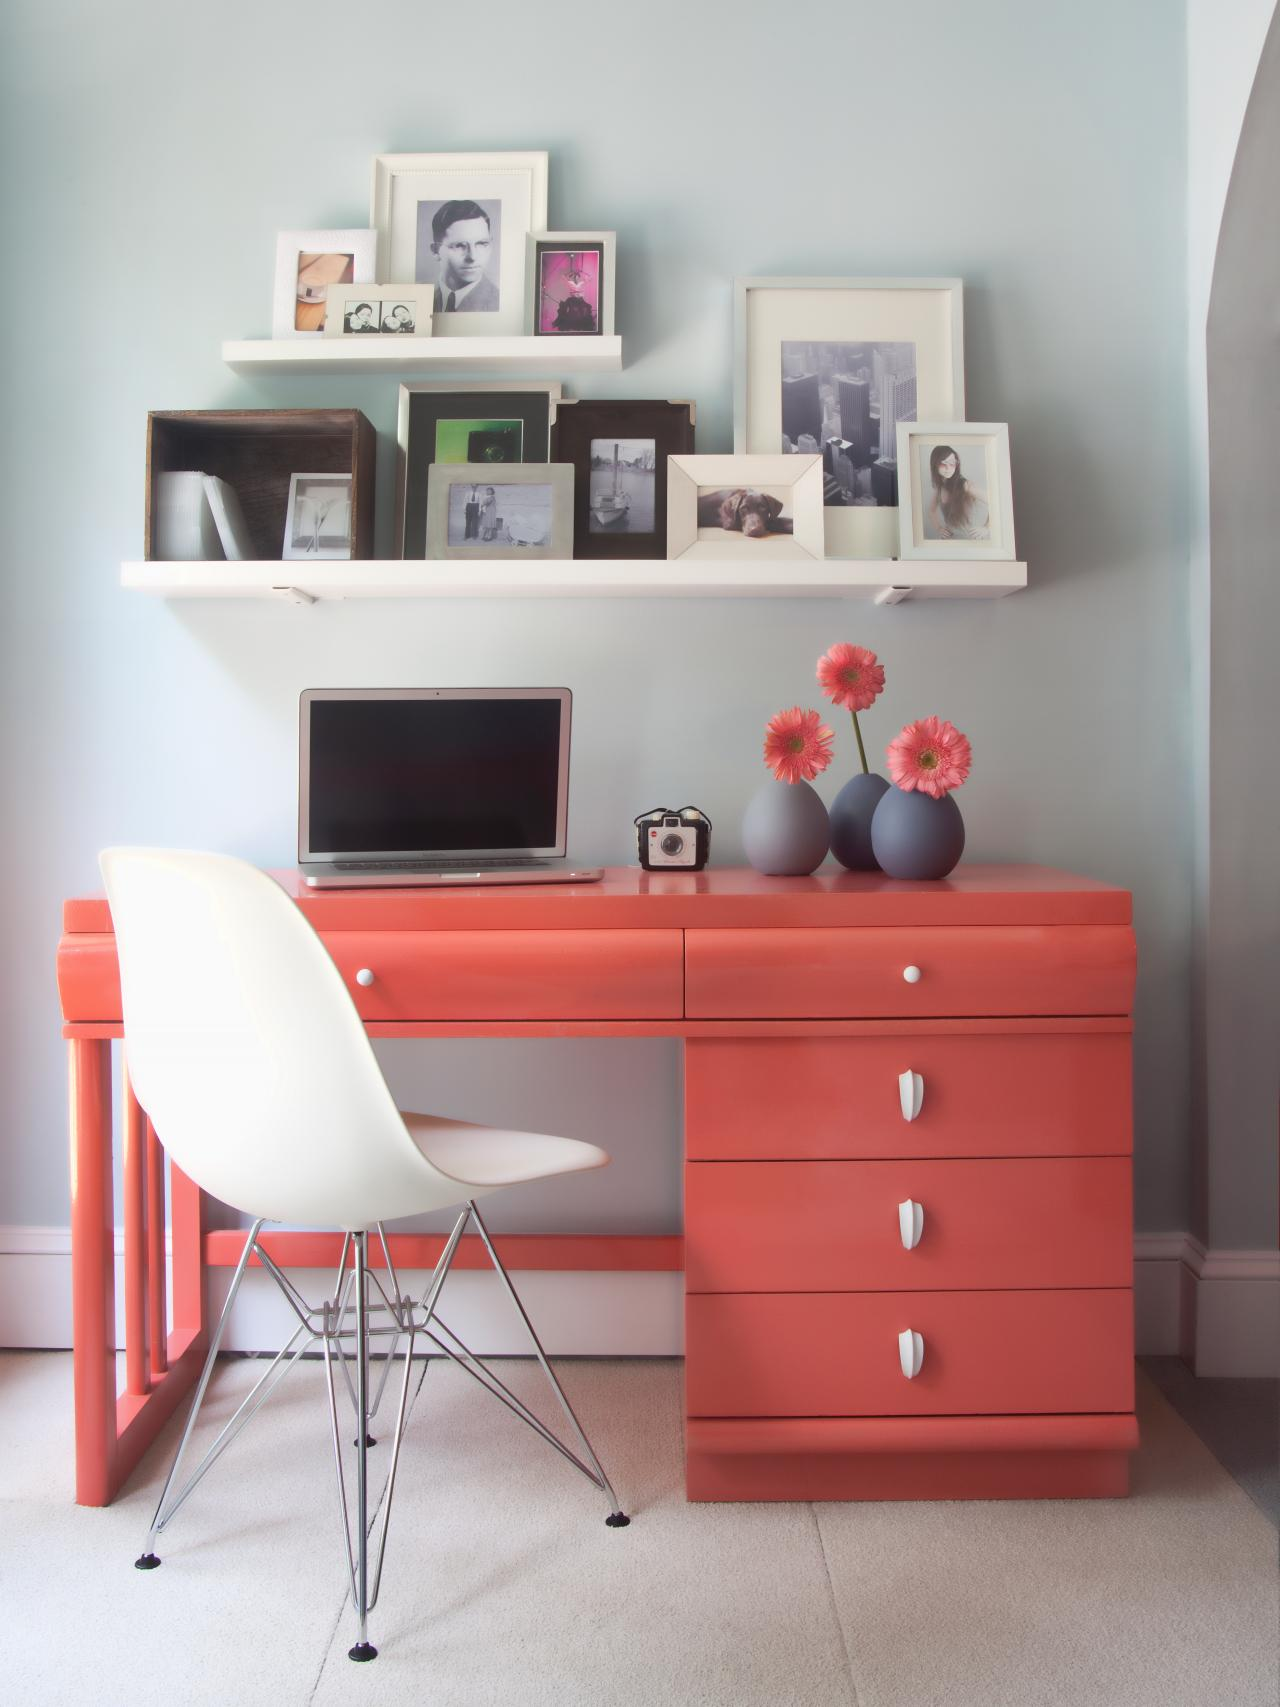 Cool chair paint designs - How To Paint Furniture